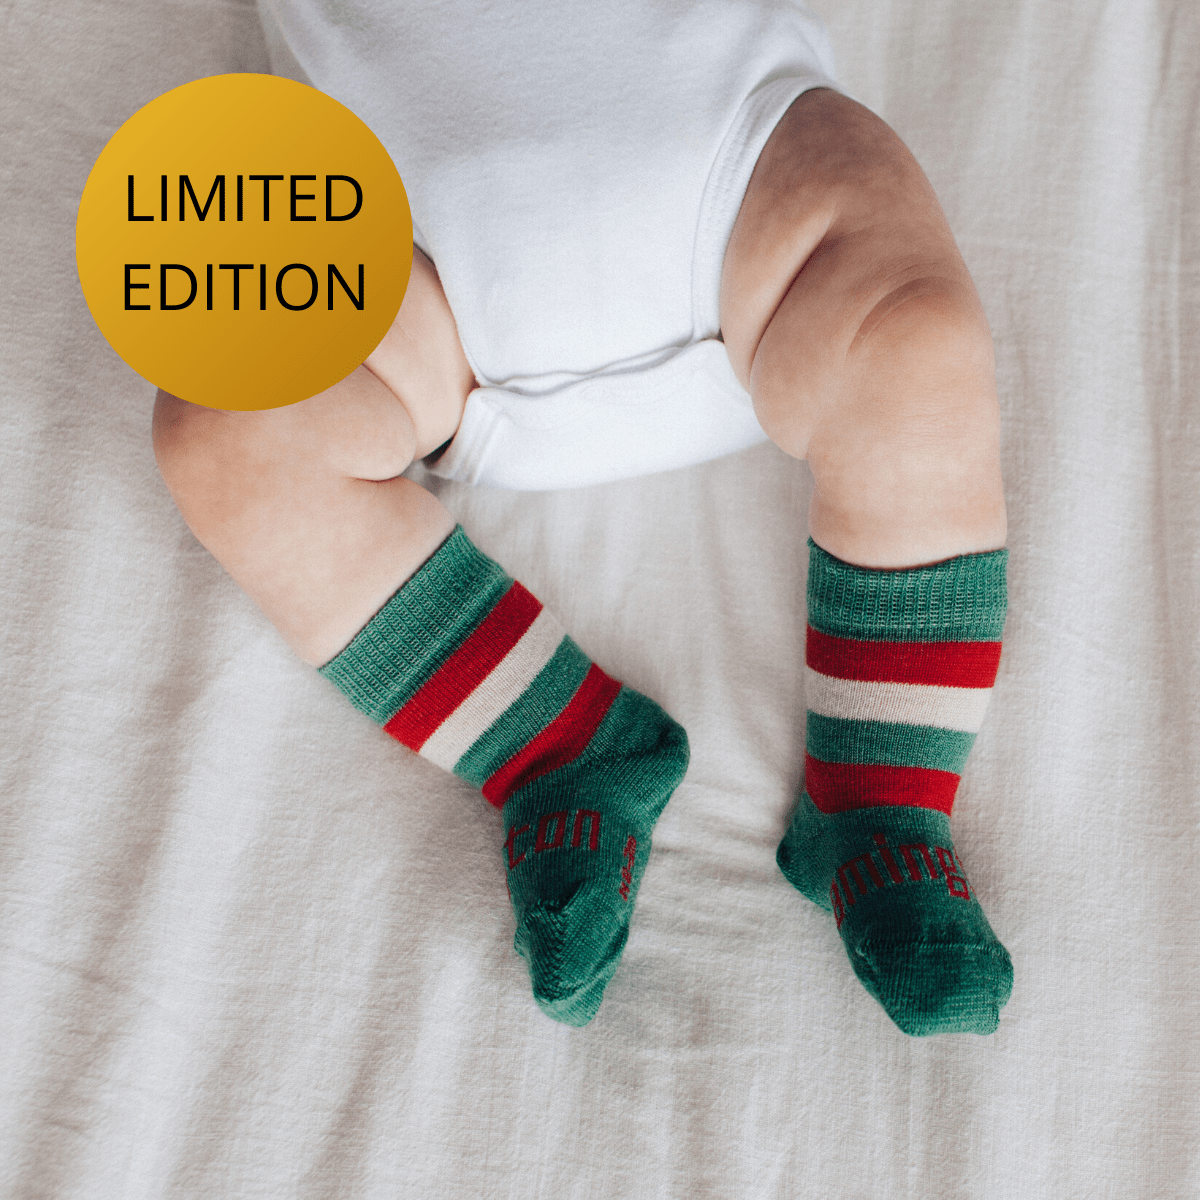 Lamington Merino Wool Crew Socks - Elf